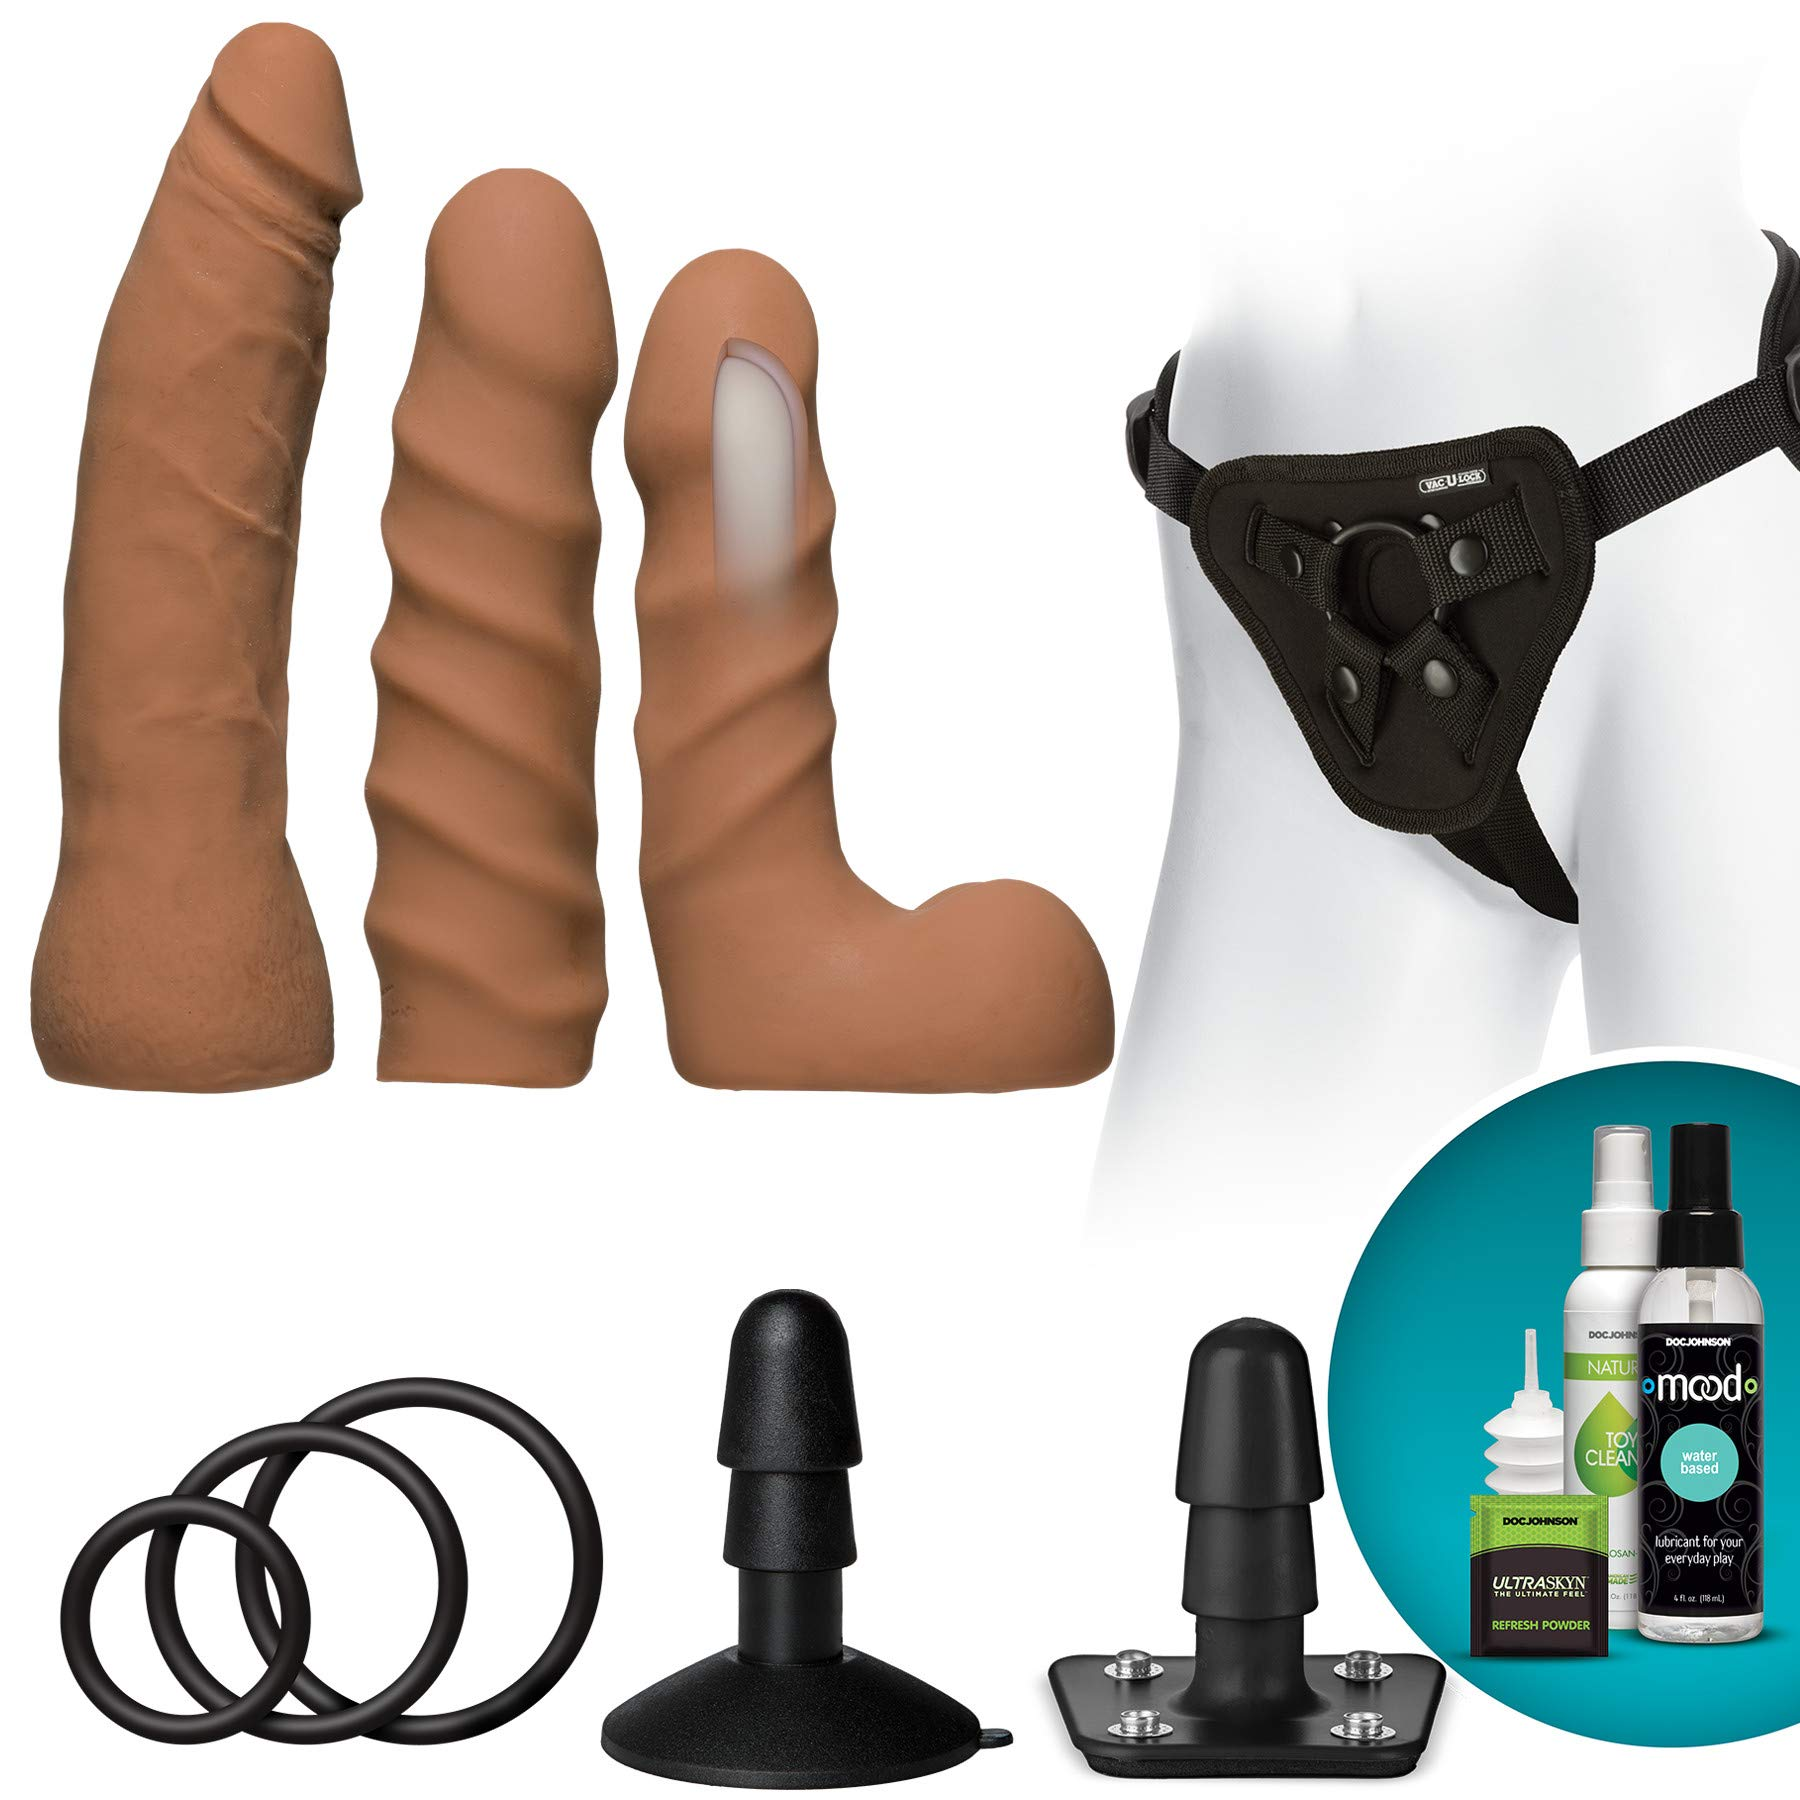 Doc Johnson Vac-U-Lock - Dual Density ULTRASKYNTM Starter Set - 3 Smaller Dildos, Supreme Harness, VUL Suction Cup, Toy Cleaner, Mood Water-Based Lube - Pegging, Caramel